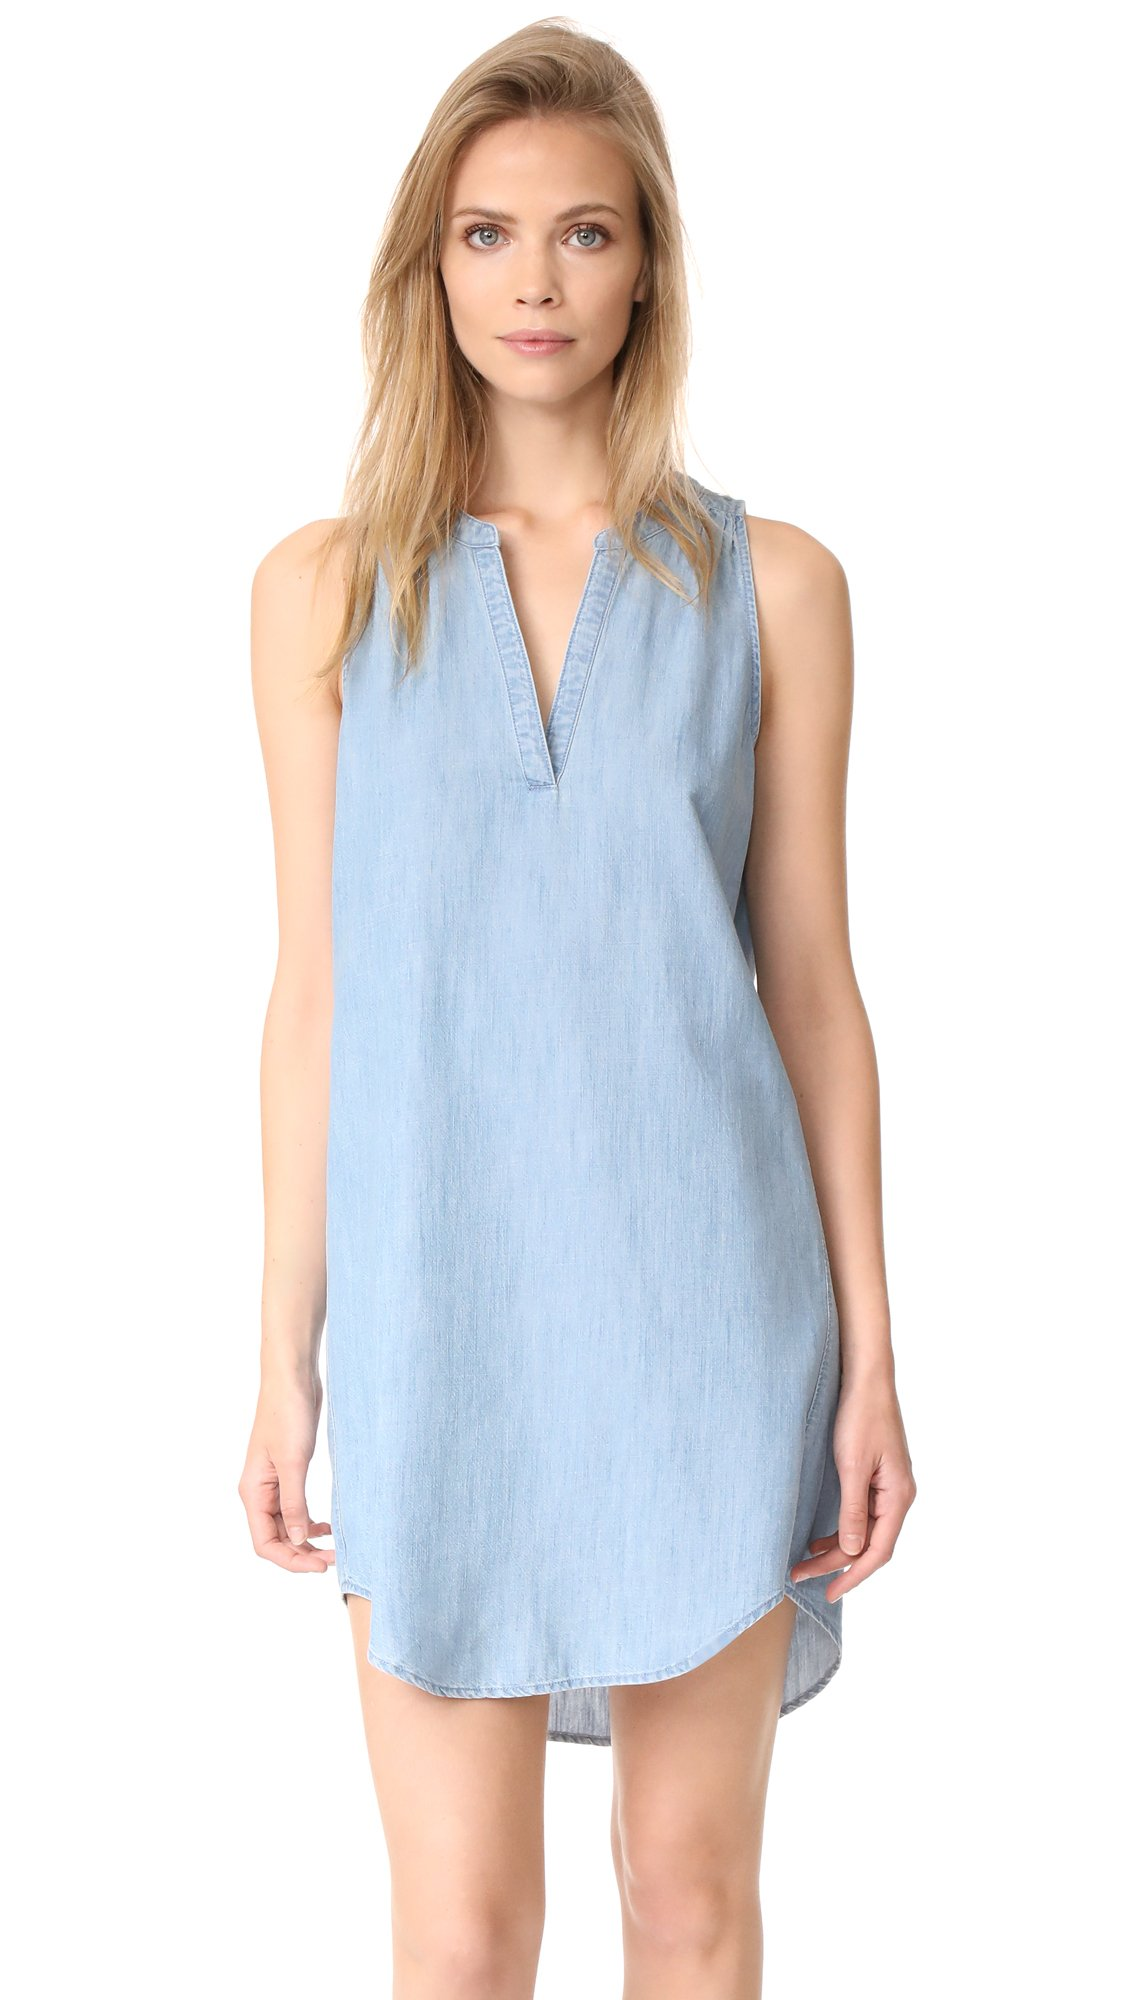 Available at Amazon: Joie Women's Crissle Dress